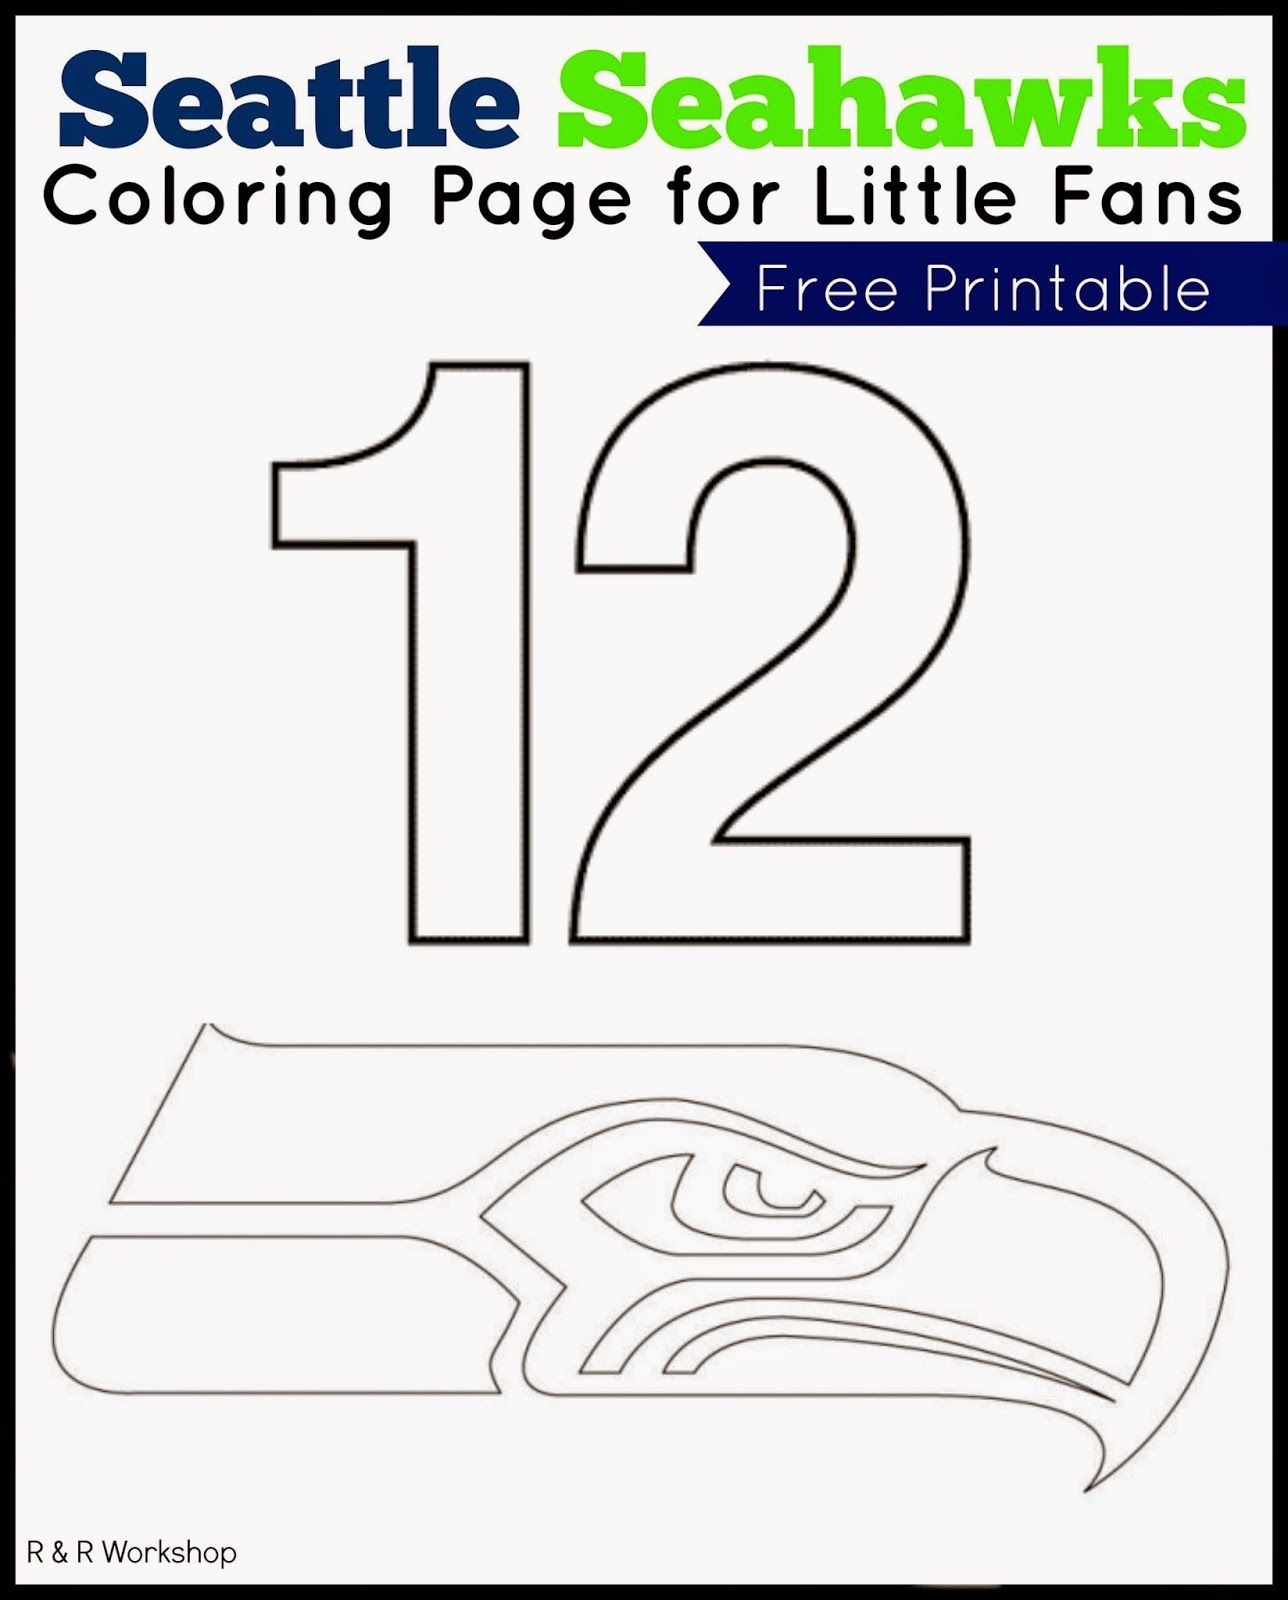 Seattle Seahawks Coloring Page For Kids   Ogt Blogger Friends - Free Printable Seahawks Coloring Pages